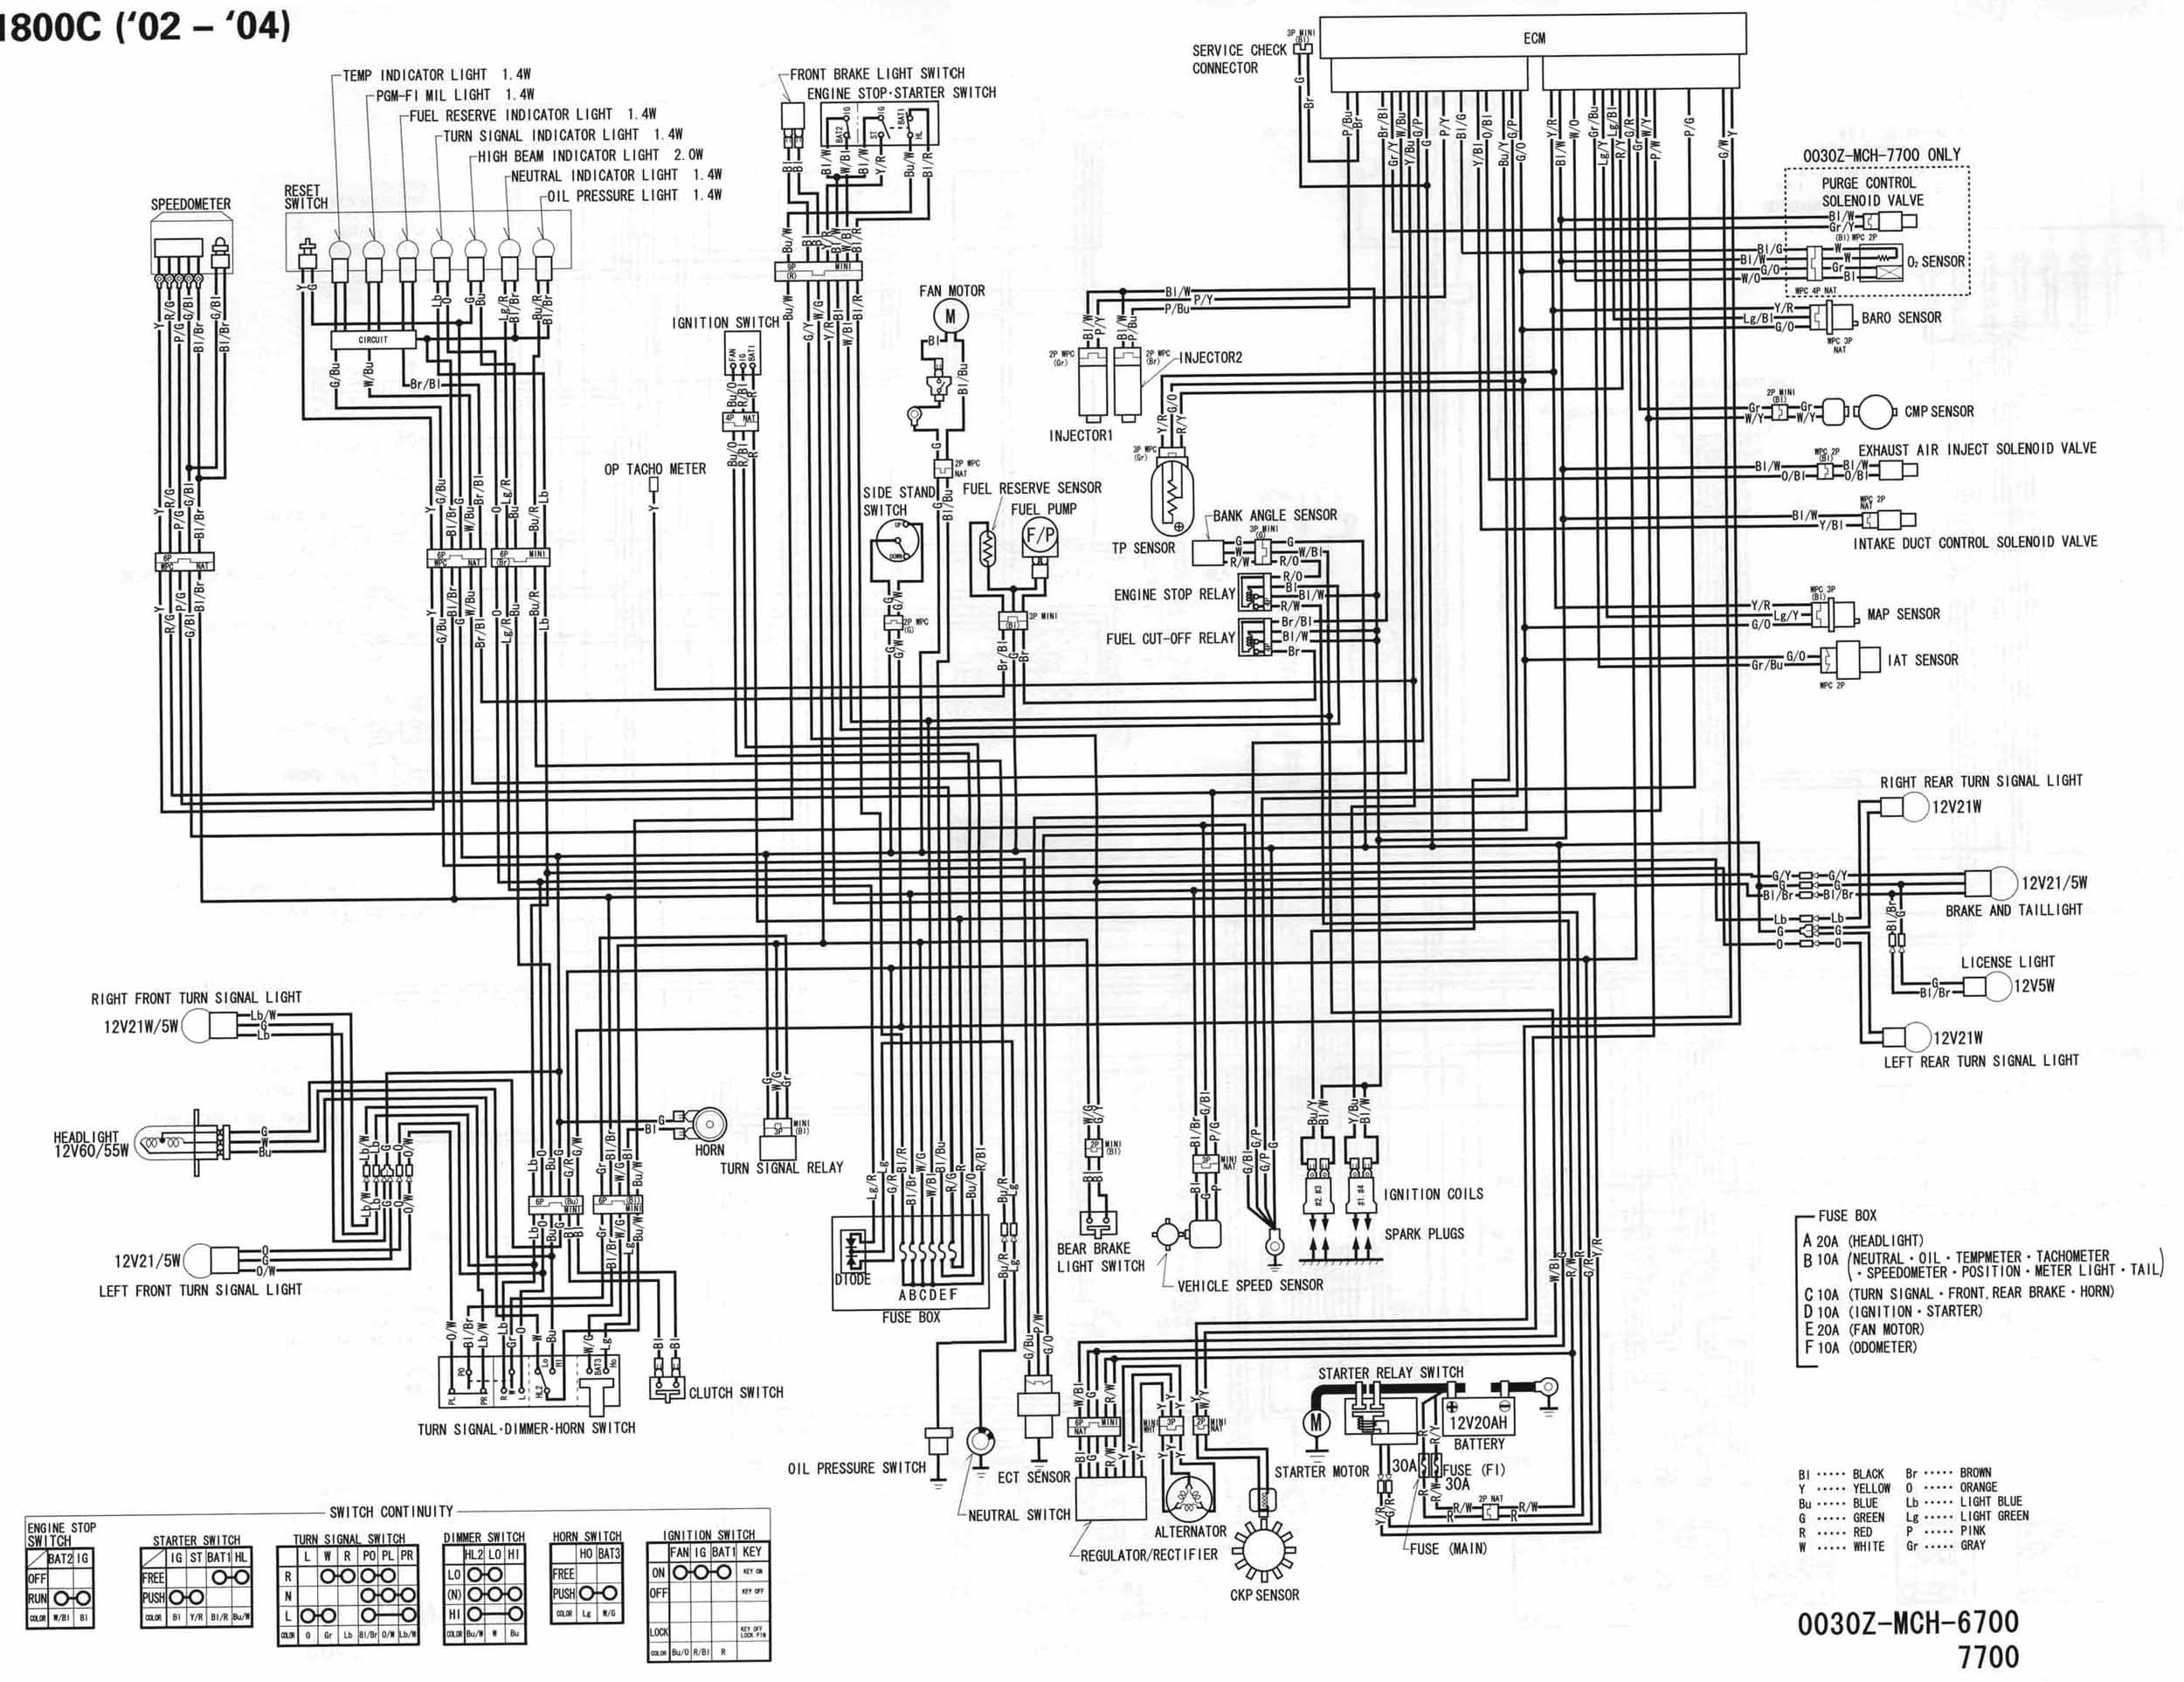 02 04_VTX1800_C_schematic motorcycle wire schematics bareass choppers motorcycle tech pages Battery Wiring Harness at reclaimingppi.co